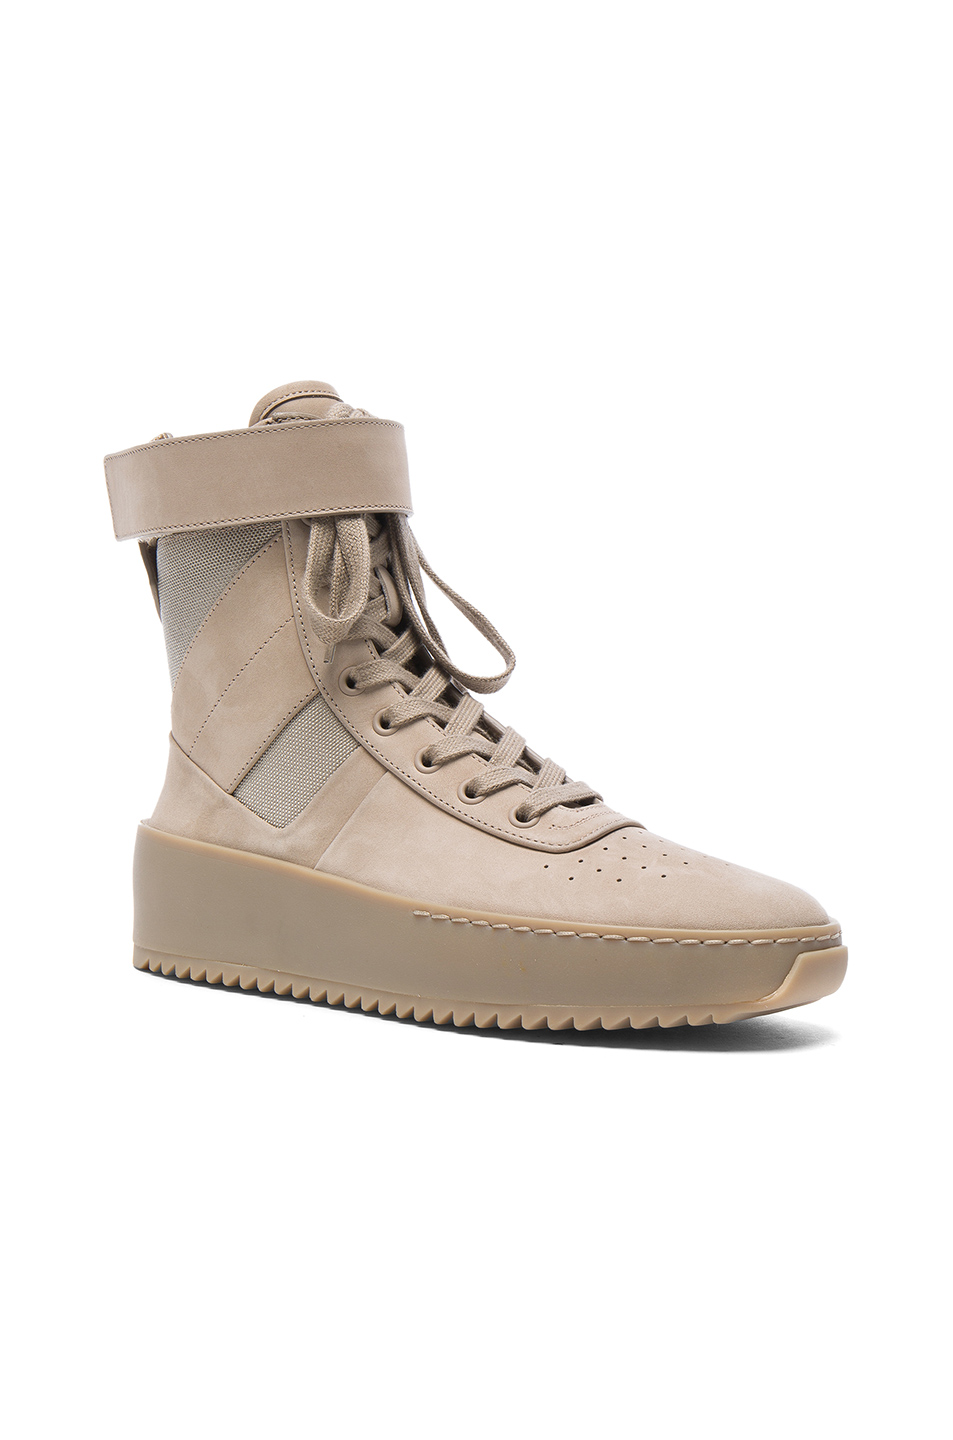 Fear of God Nubuck Leather Military Sneakers in Neutrals